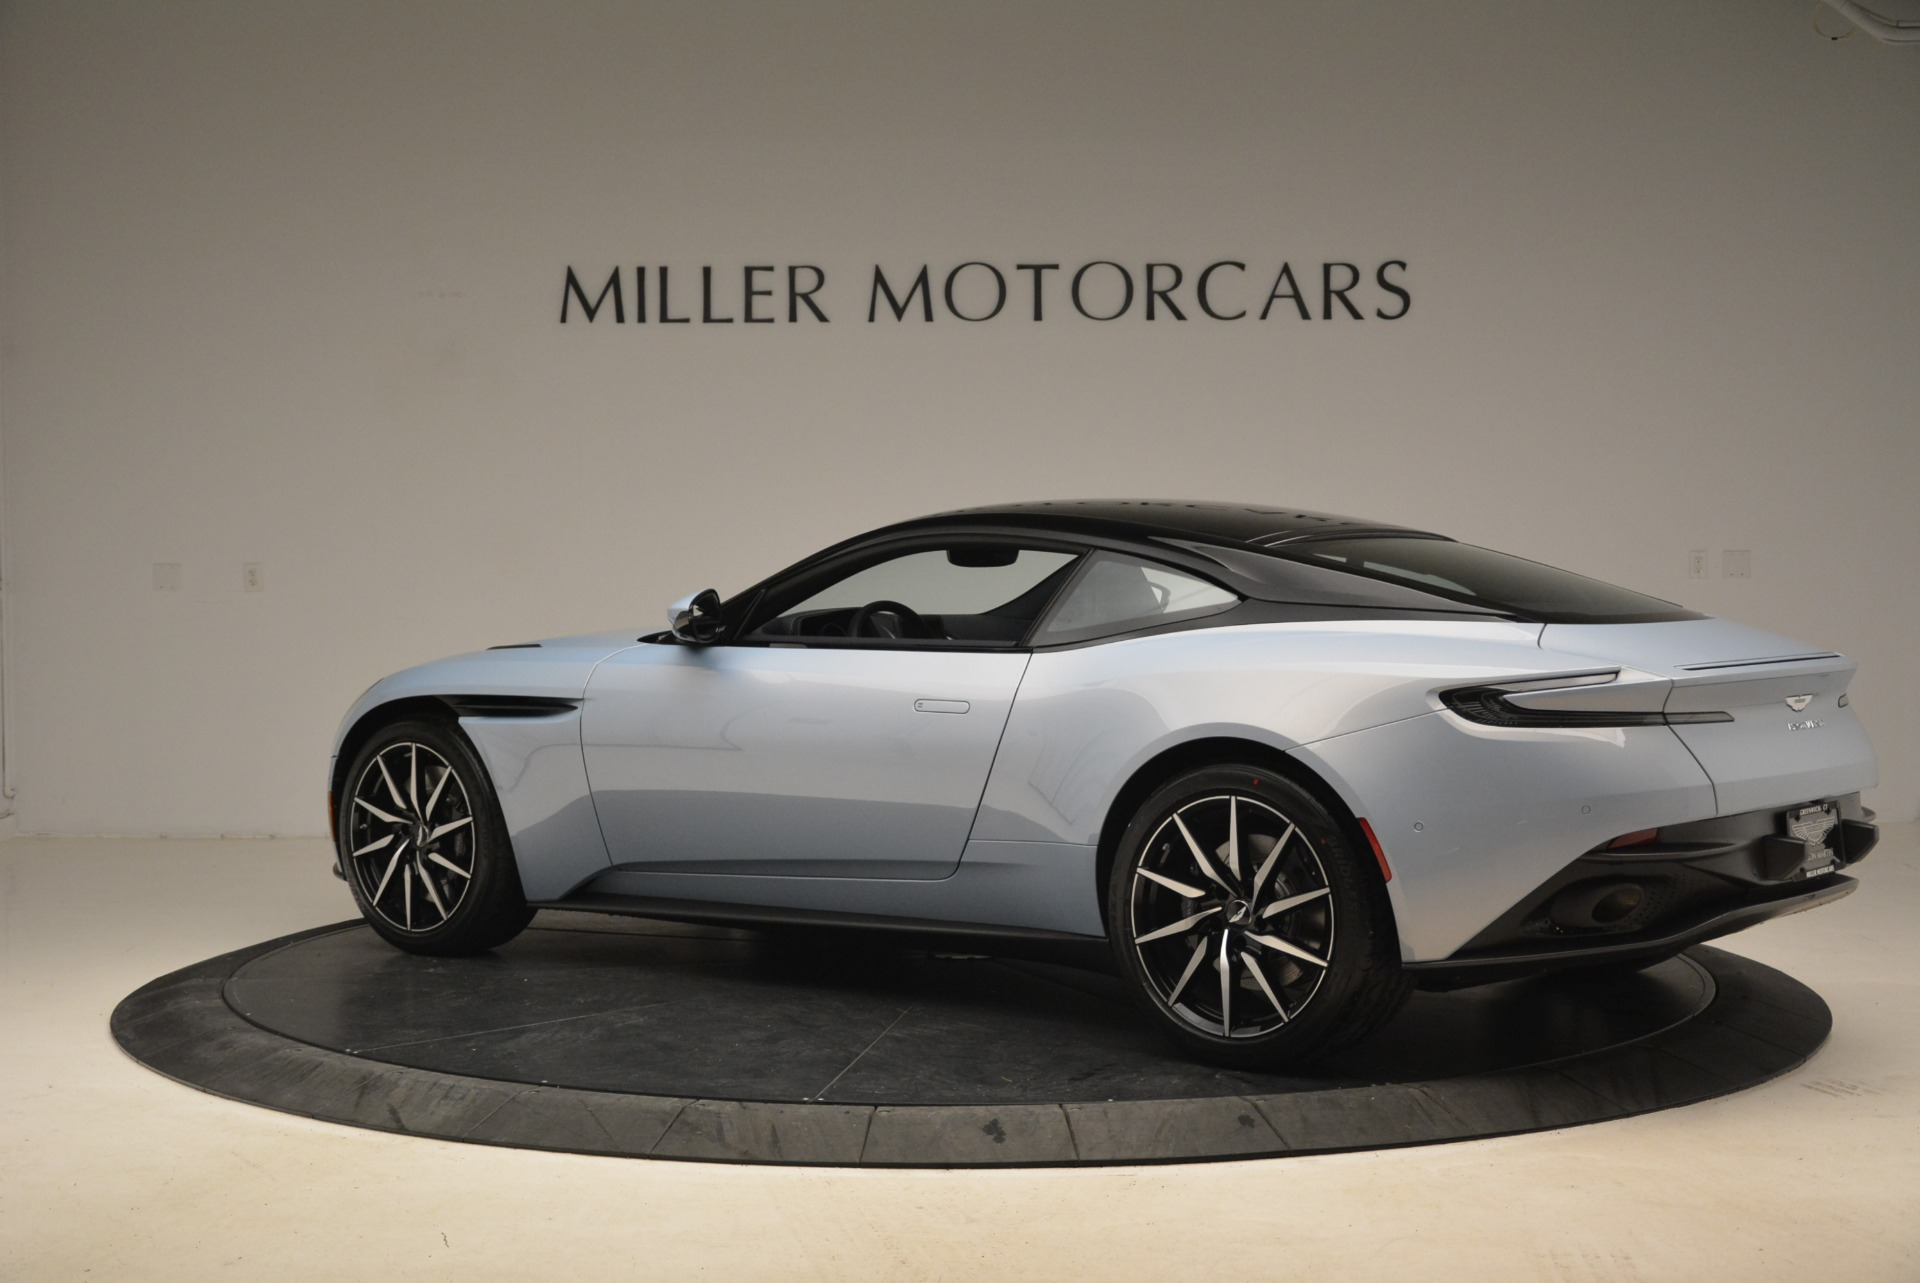 New 2018 Aston Martin DB11 V12 For Sale In Westport, CT 2225_p4